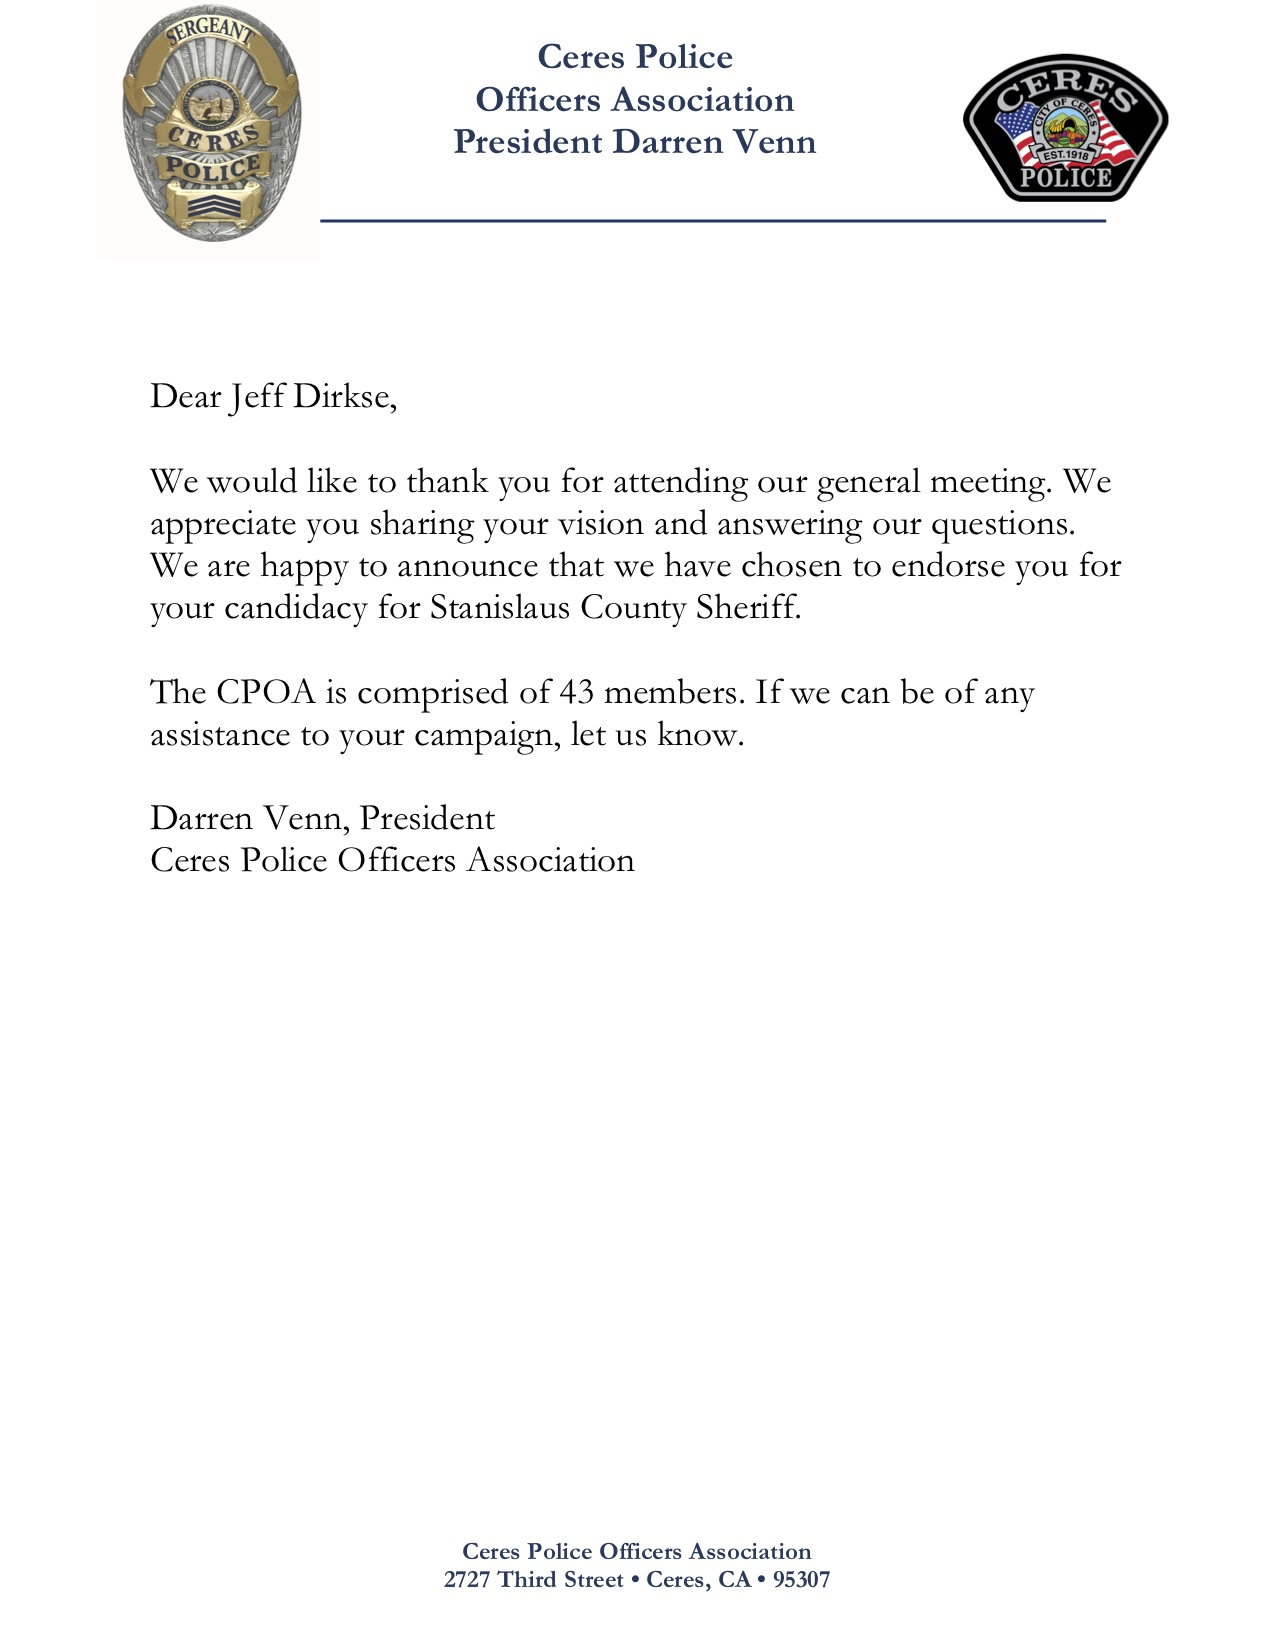 Dirkse CPOA Endorsement